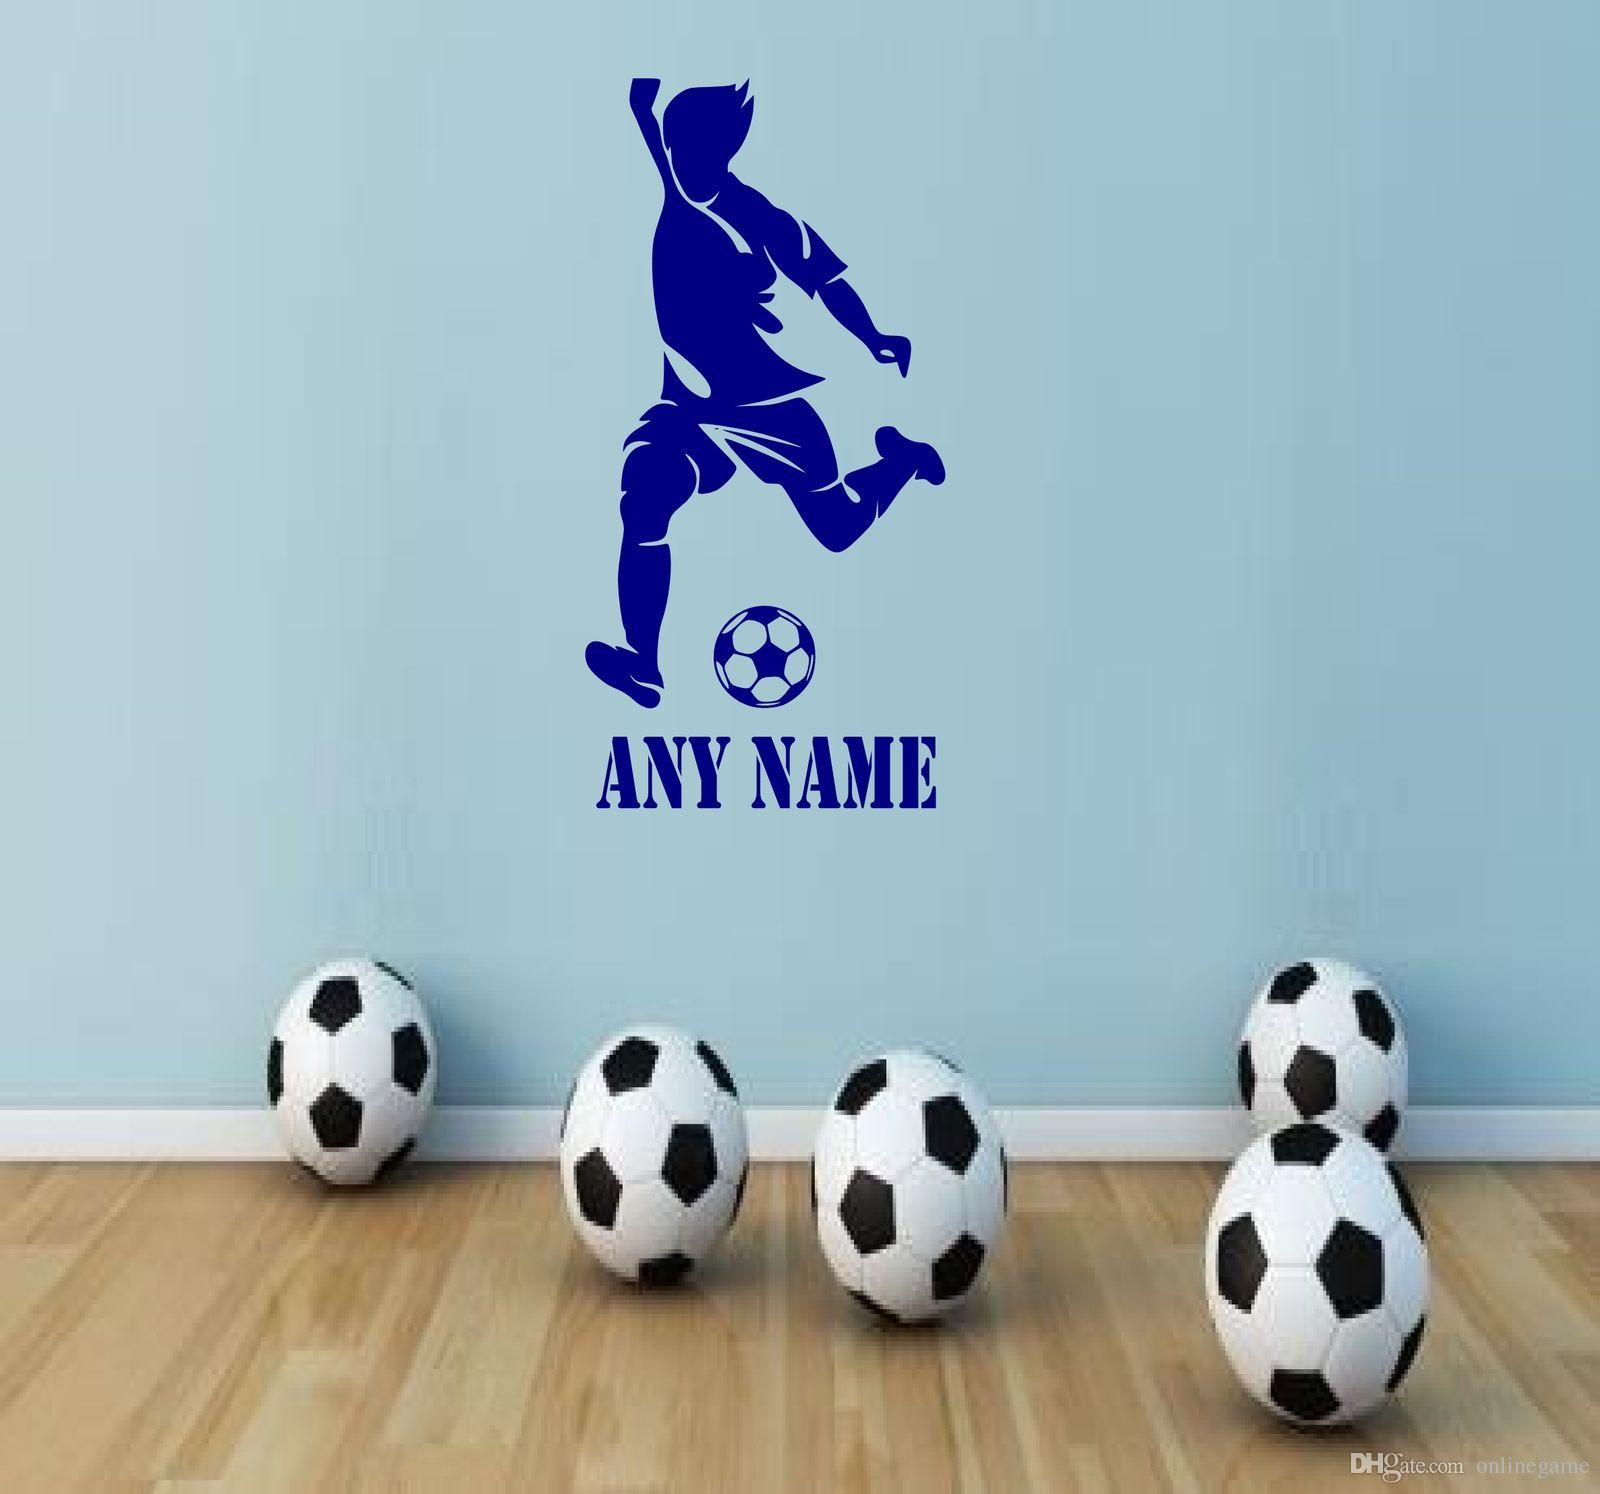 Personalised Football Player Vinyl Wall Sticker Any Name Art Decal Custom Gift Home Boys rooms Decor 30*60//45*90 cm